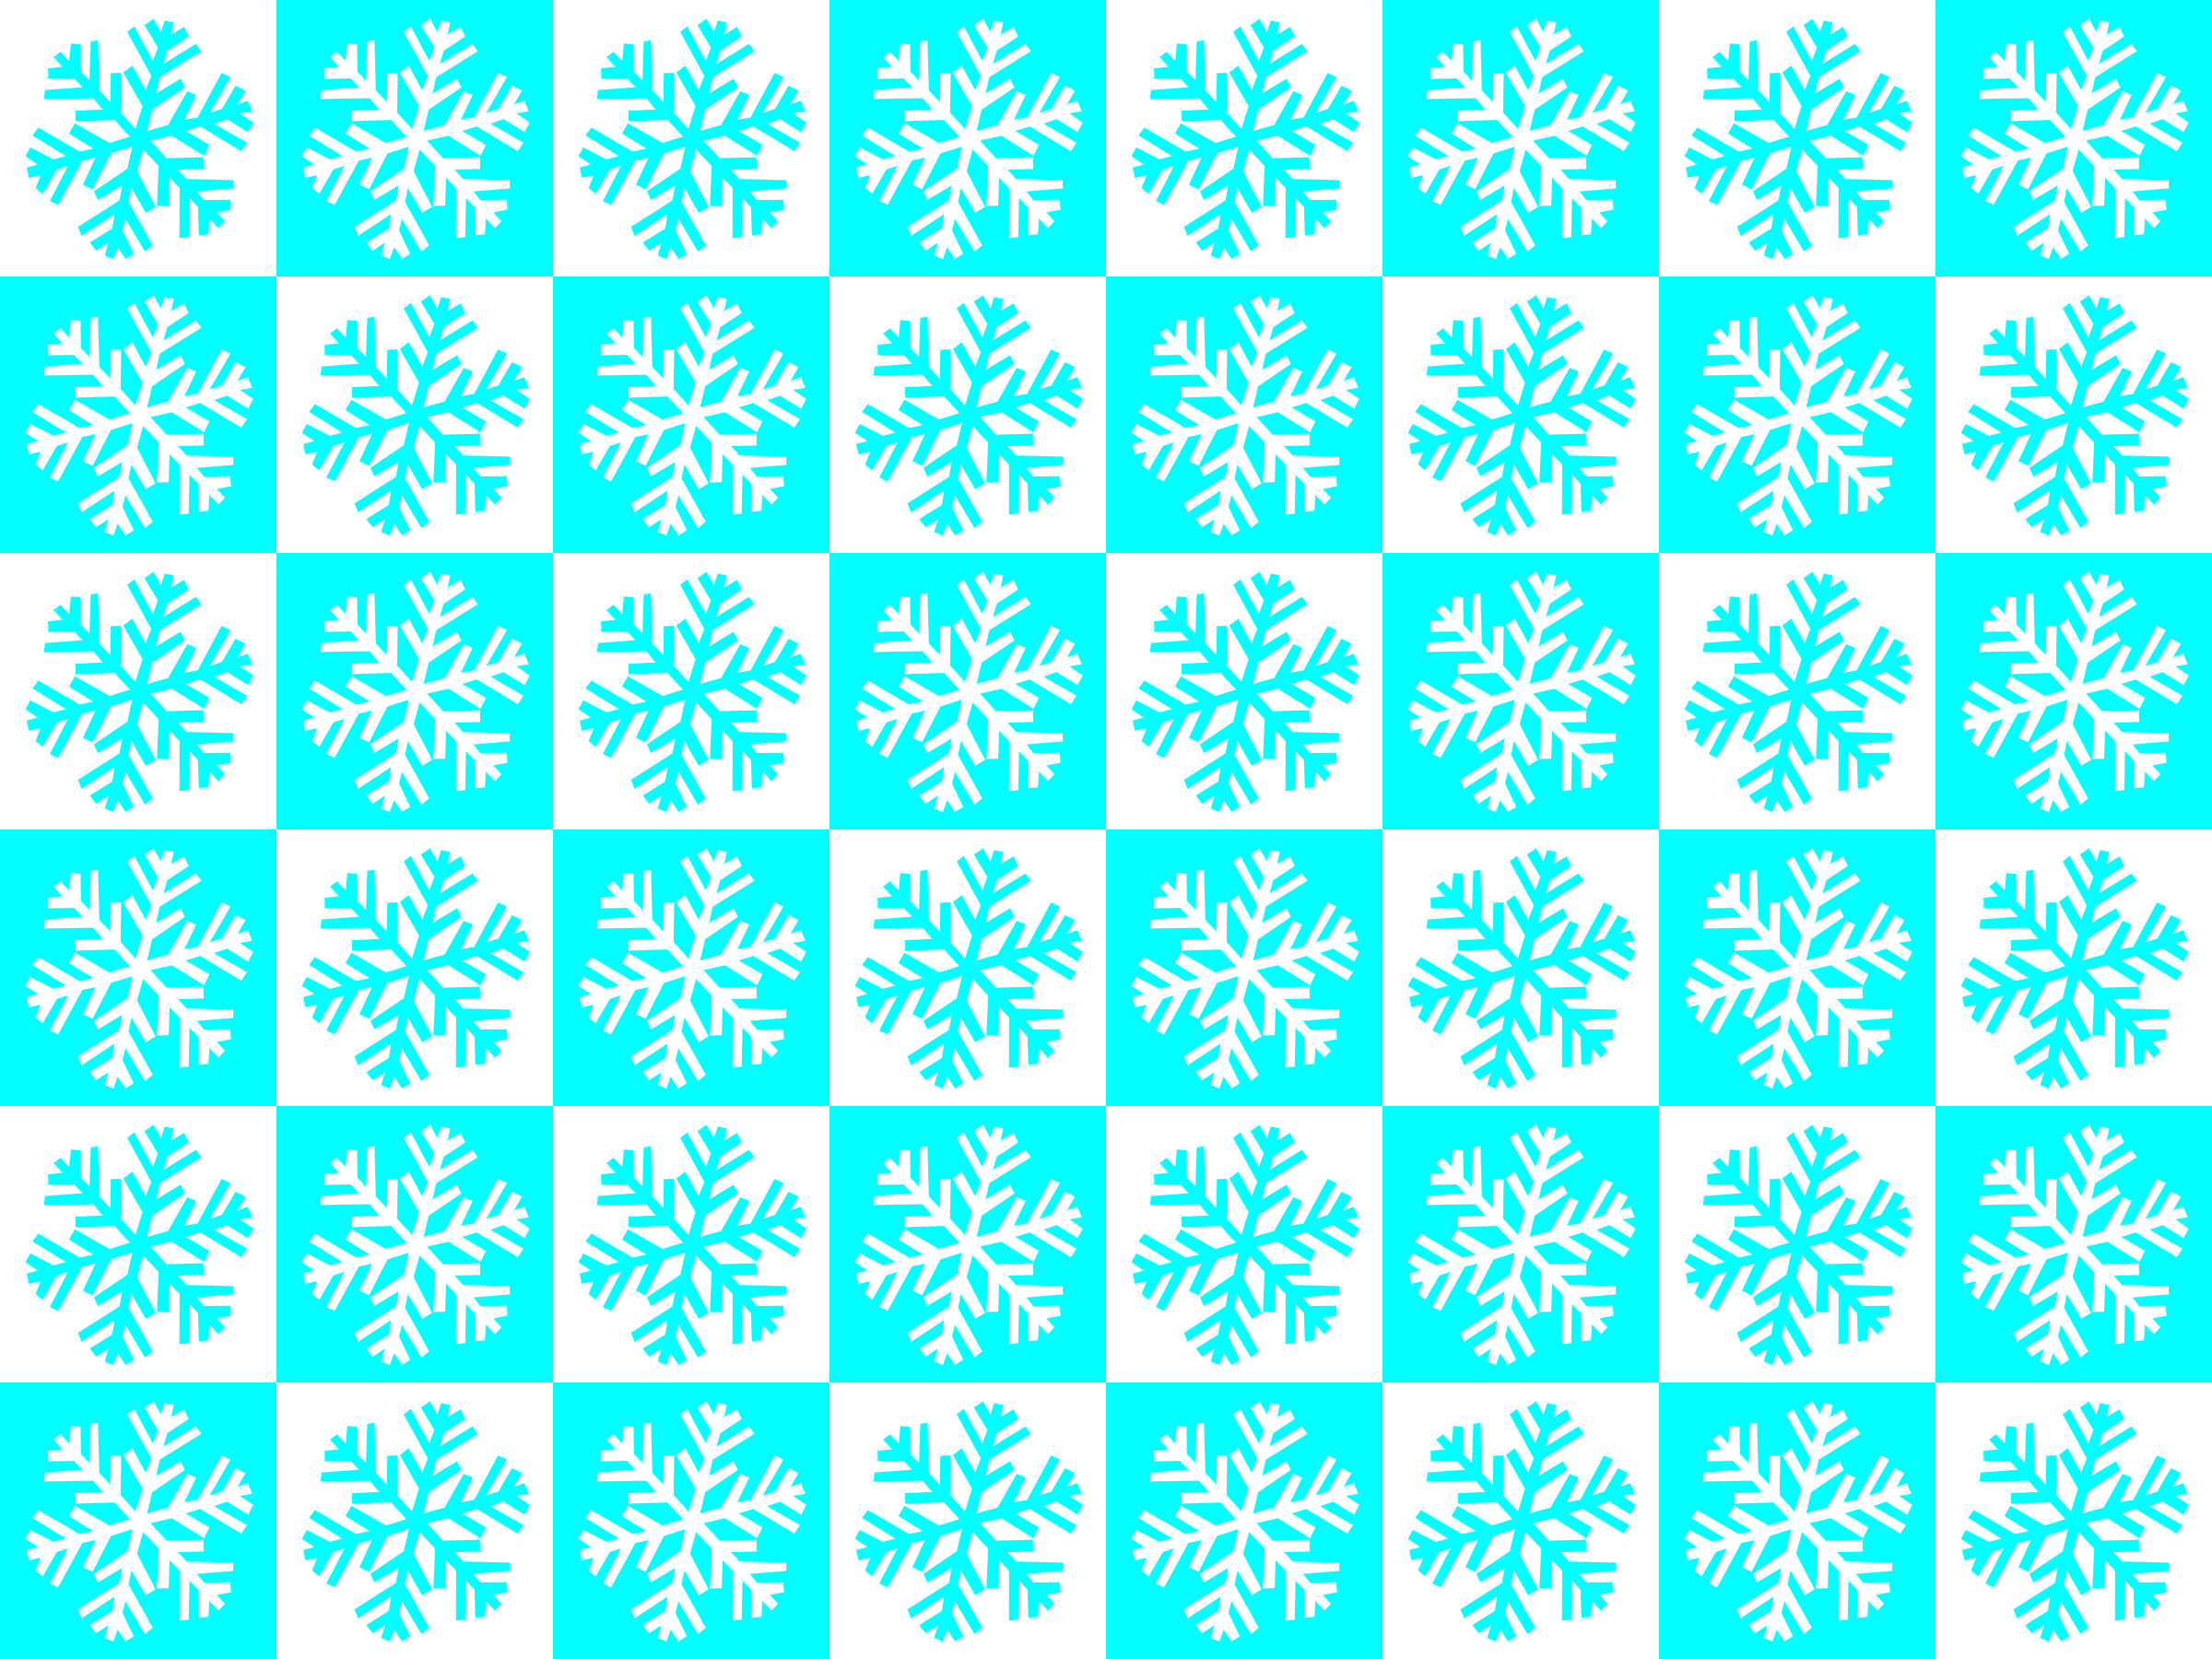 Snowflake pattern by Firkin